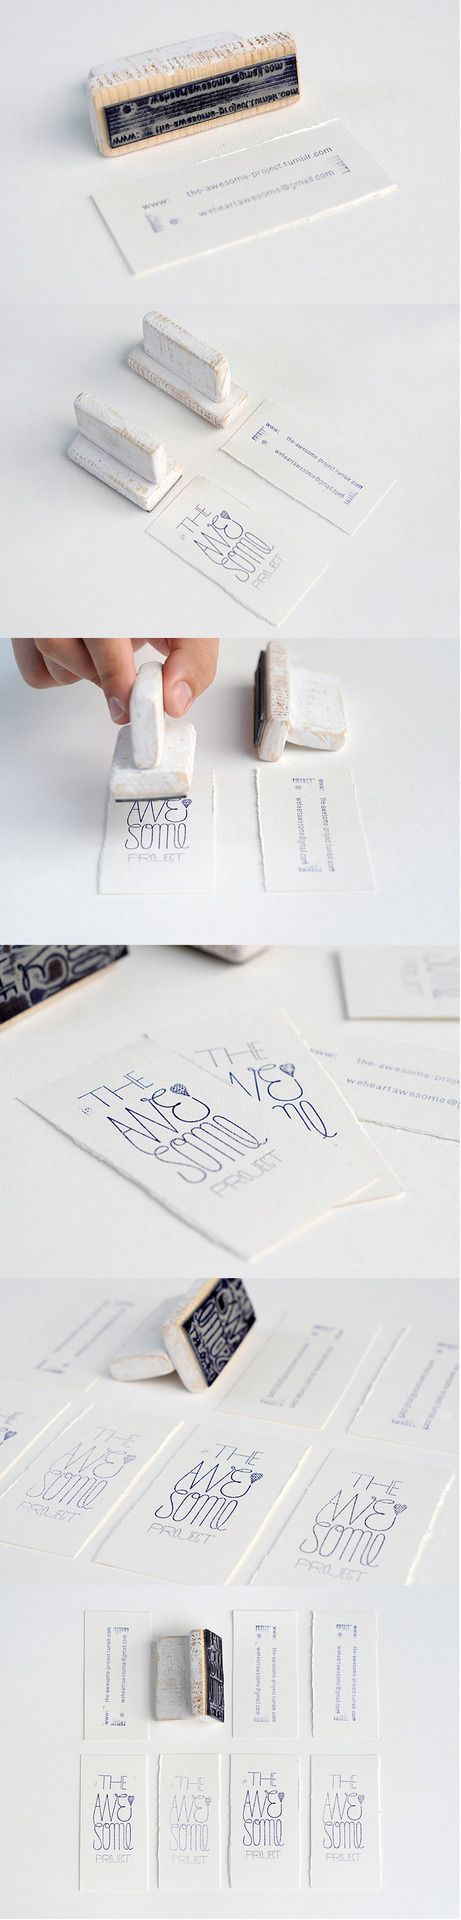 hand-made  home-made Awesome business cards not-for-sale/personal project (click to enlarge)